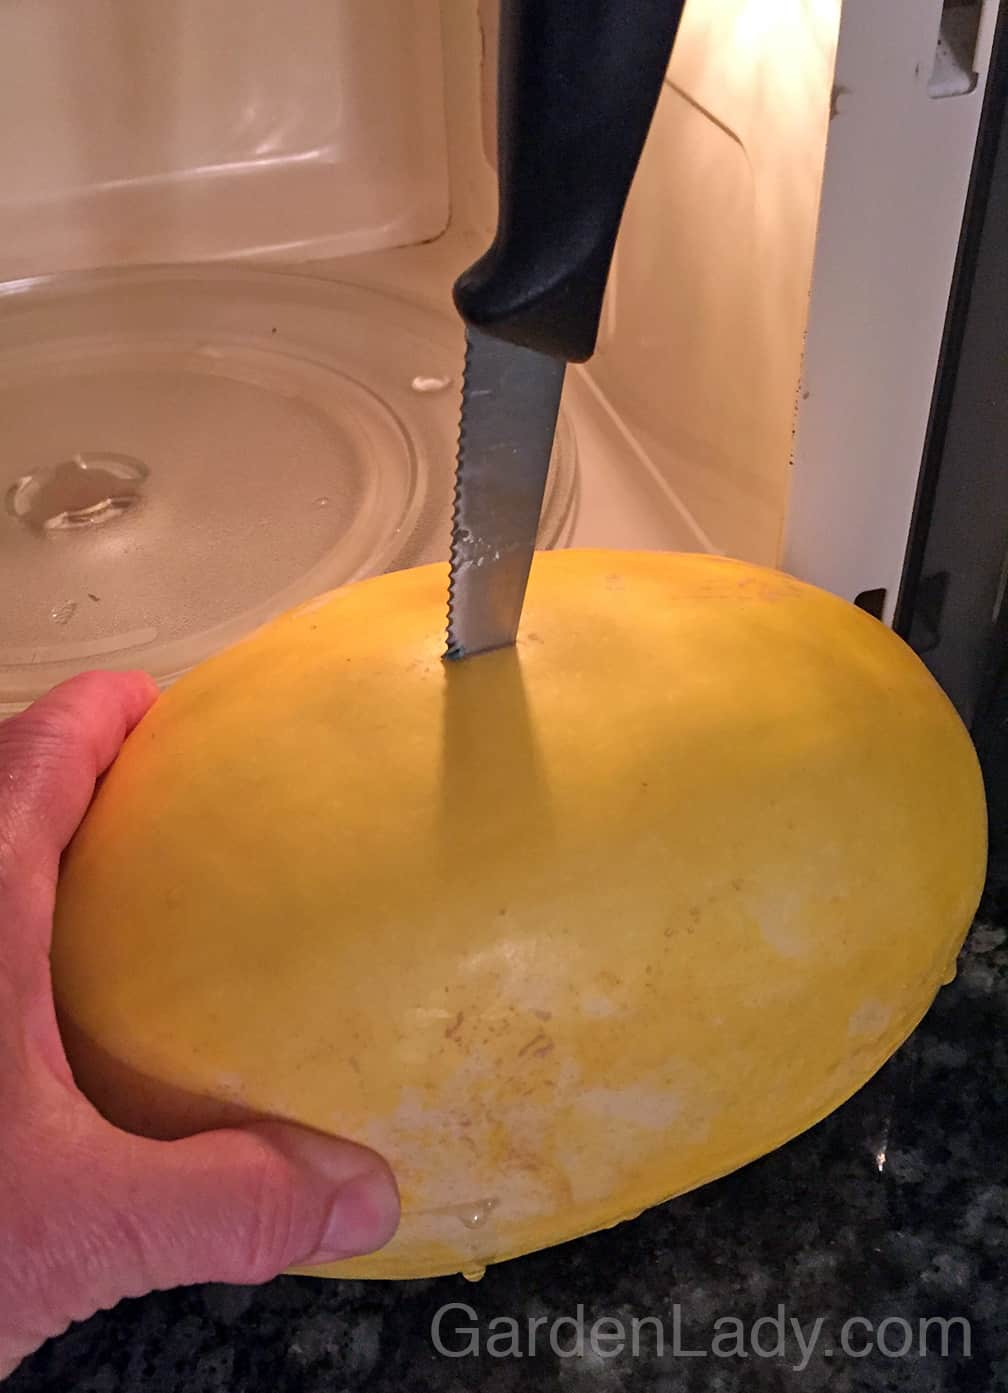 Pierce the squash with a knife in at least 3 places. Then it's less likely that it will explode in the microwave. There's still a slight chance....but less likely.